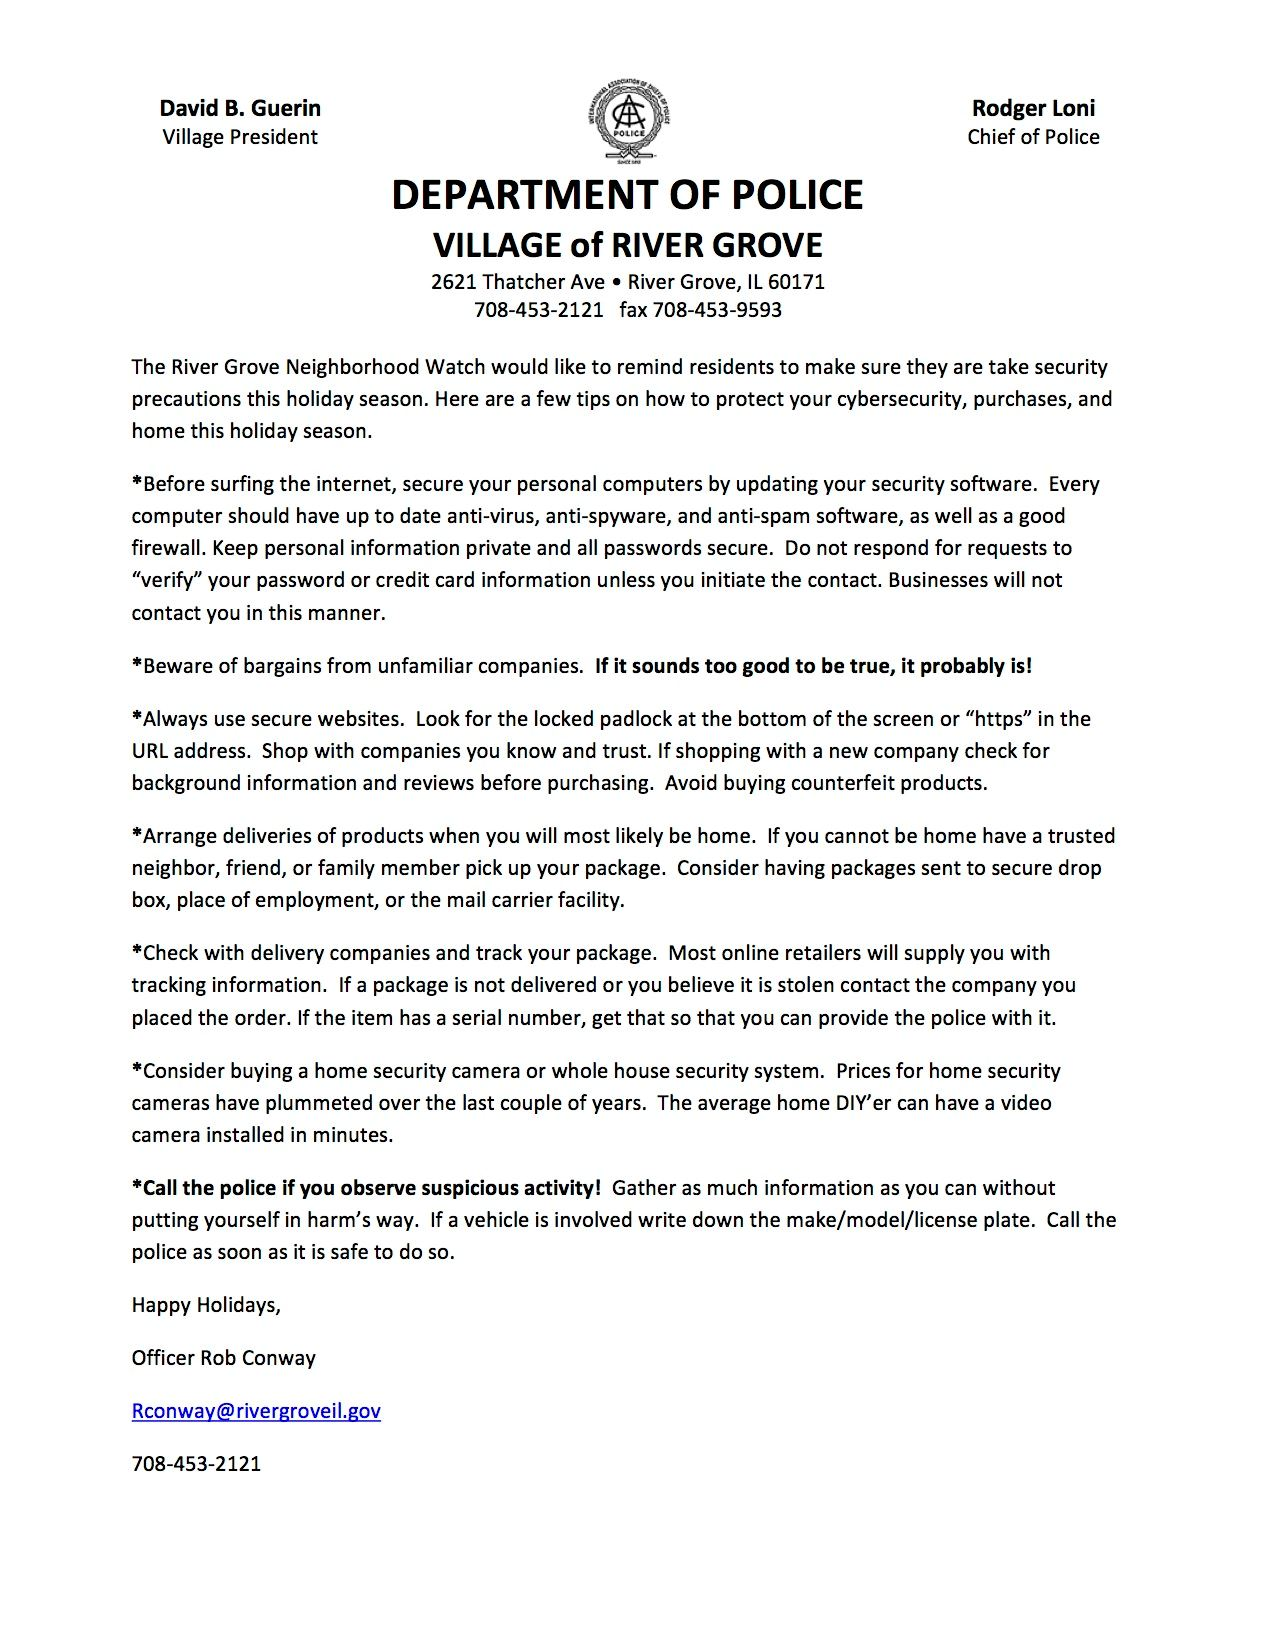 Letter from the River Grove Police offering holiday safety precautions